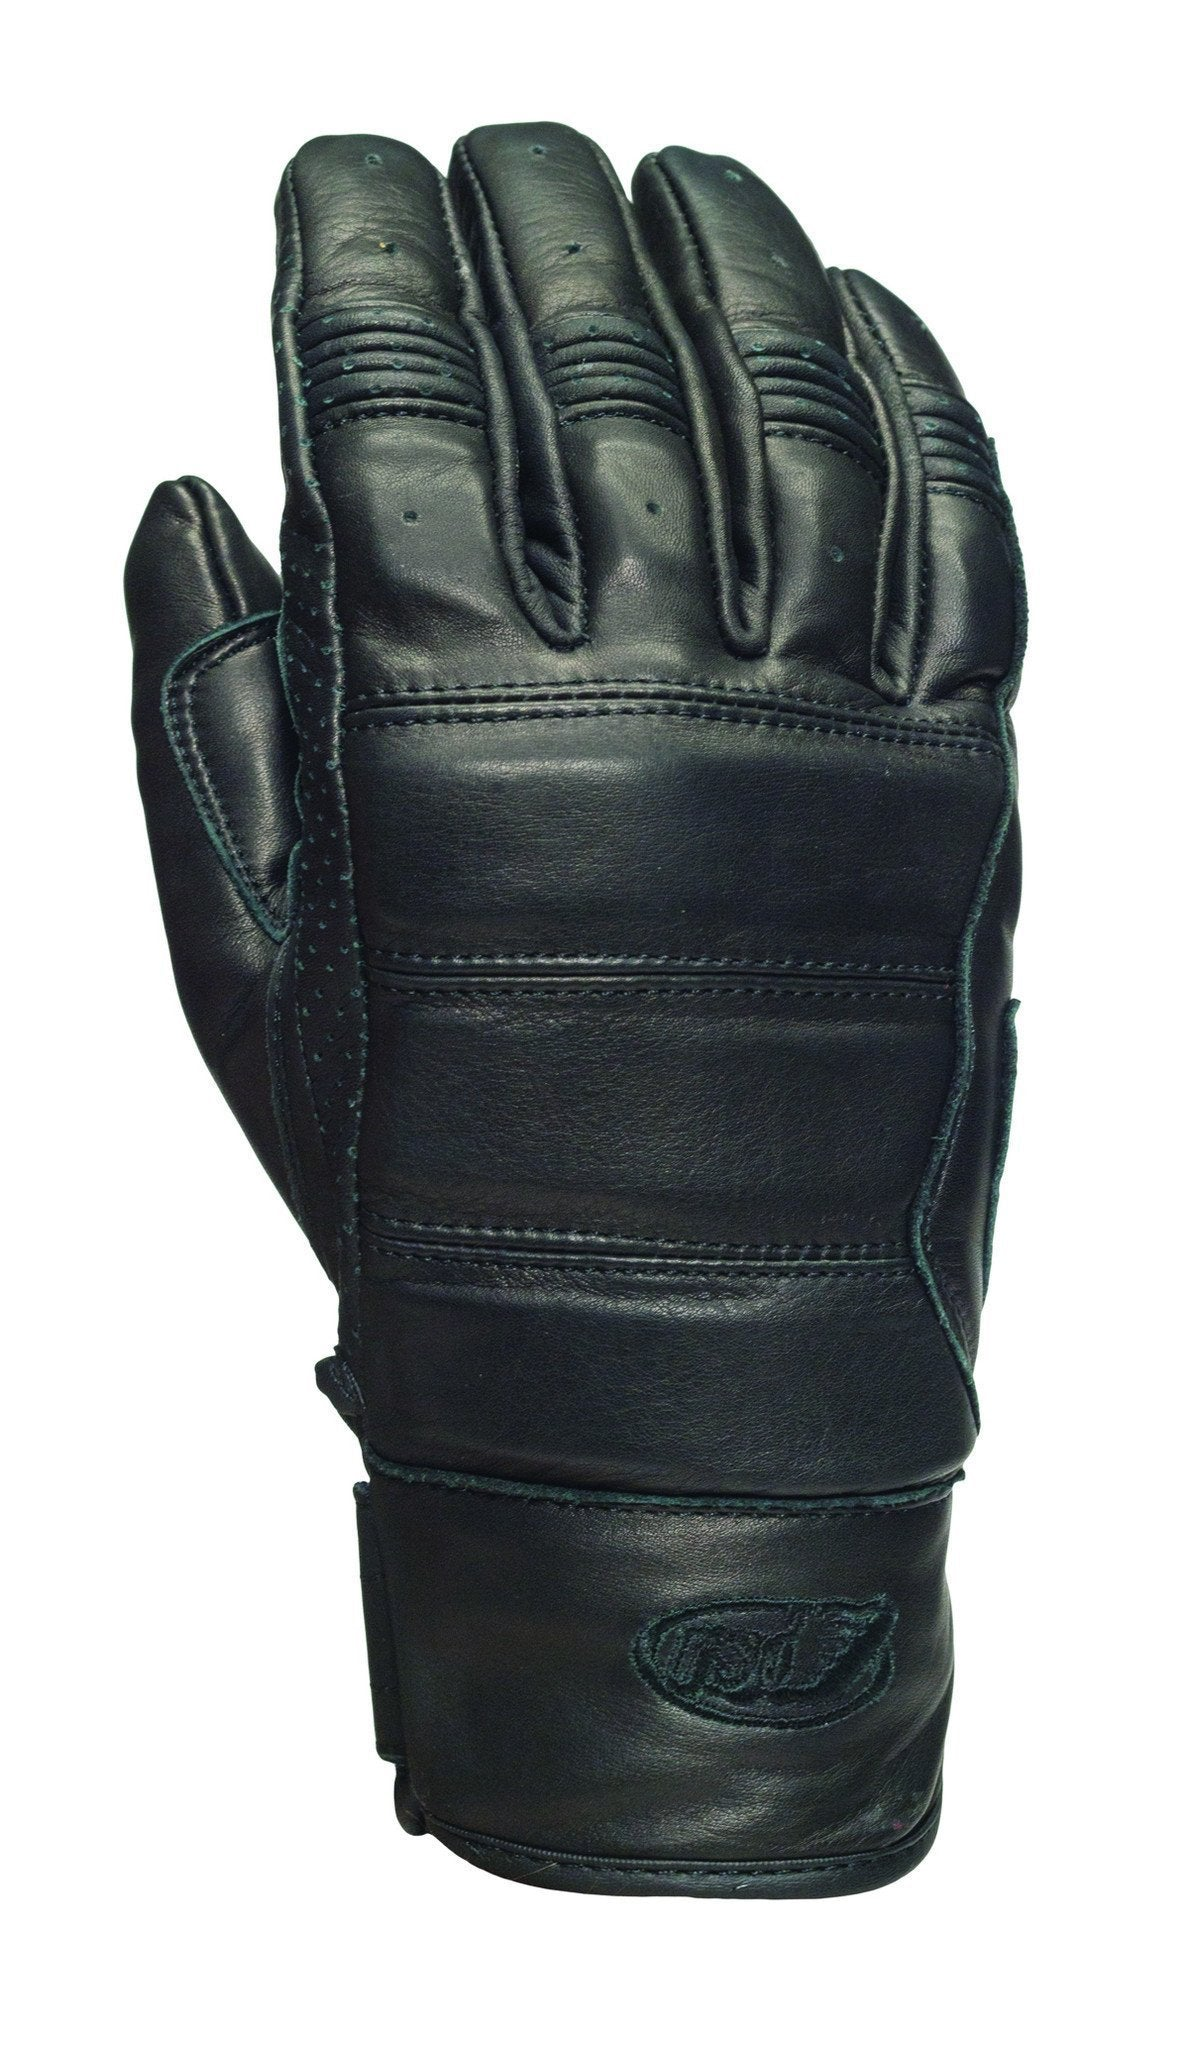 Roland Sands Design - Roland Sands Design Ronin Gloves - Gloves - Salt Flats Clothing